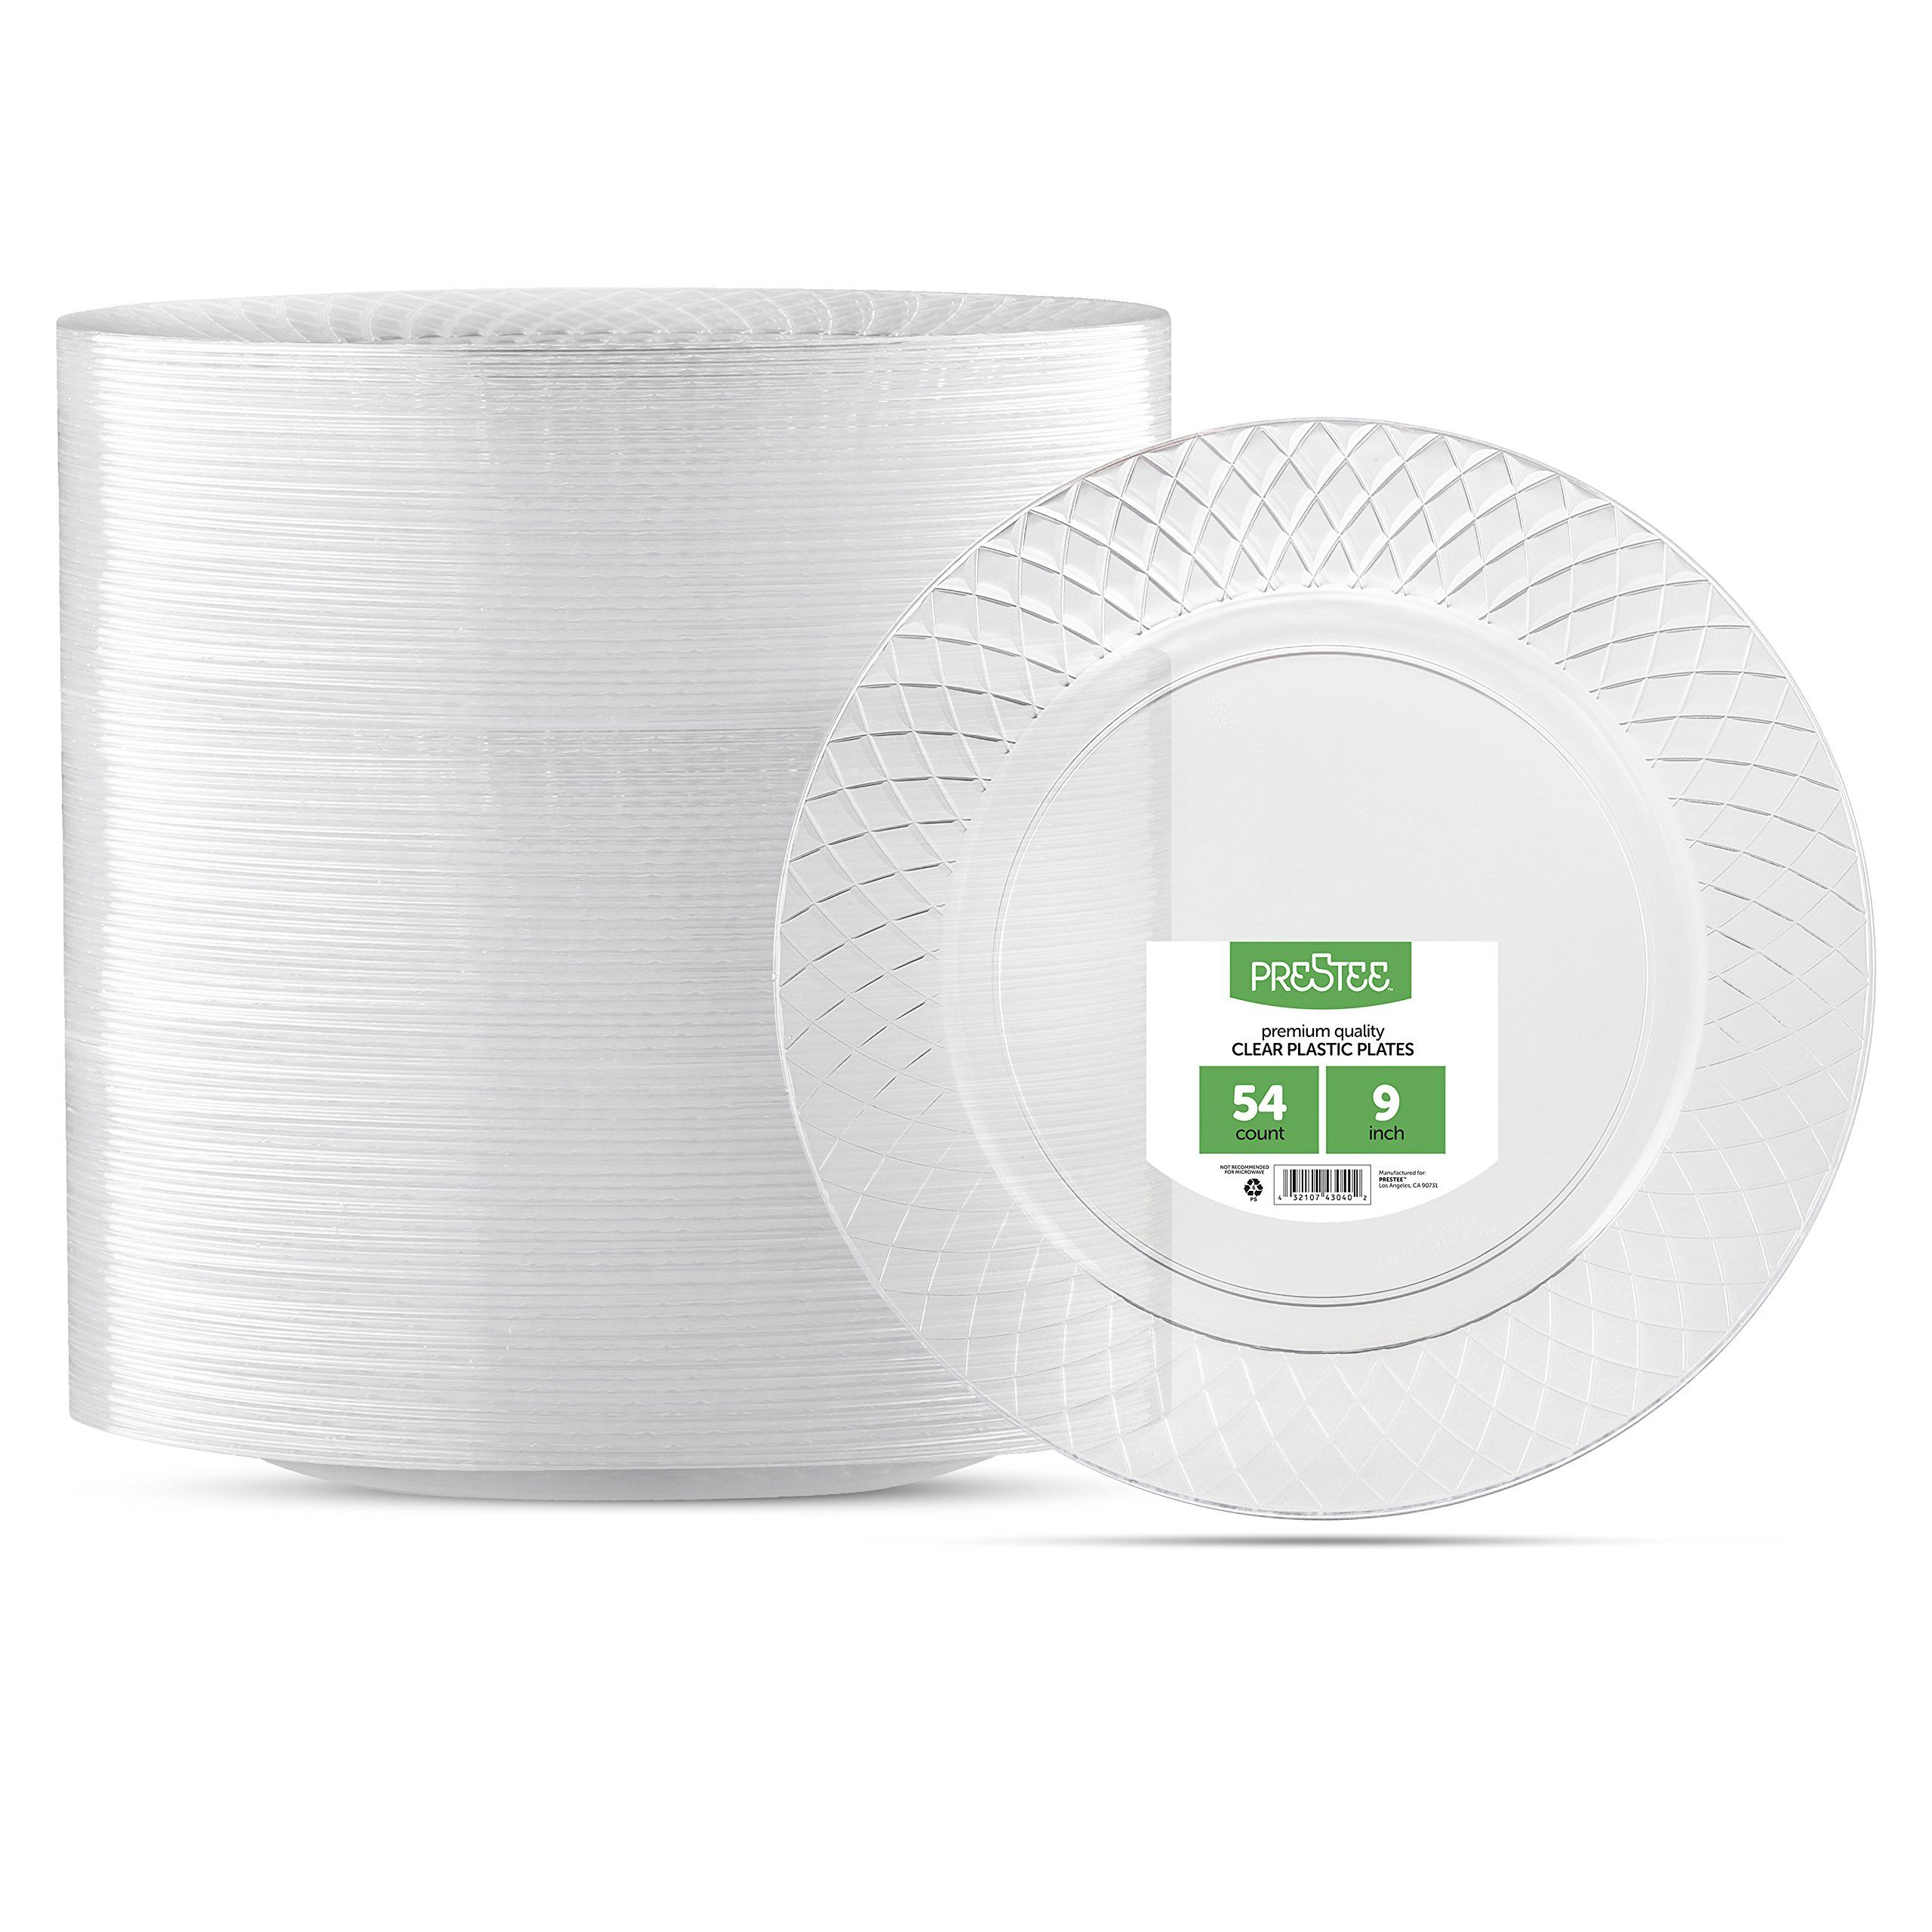 Prestee 9  Diamond Cut Design Crystal Heavyweight Clear Round Plastic Party Plates - 54 Count - Disposable - Premium Dinner Plates for Weddings Parties ...  sc 1 st  Pinterest & Prestee 9